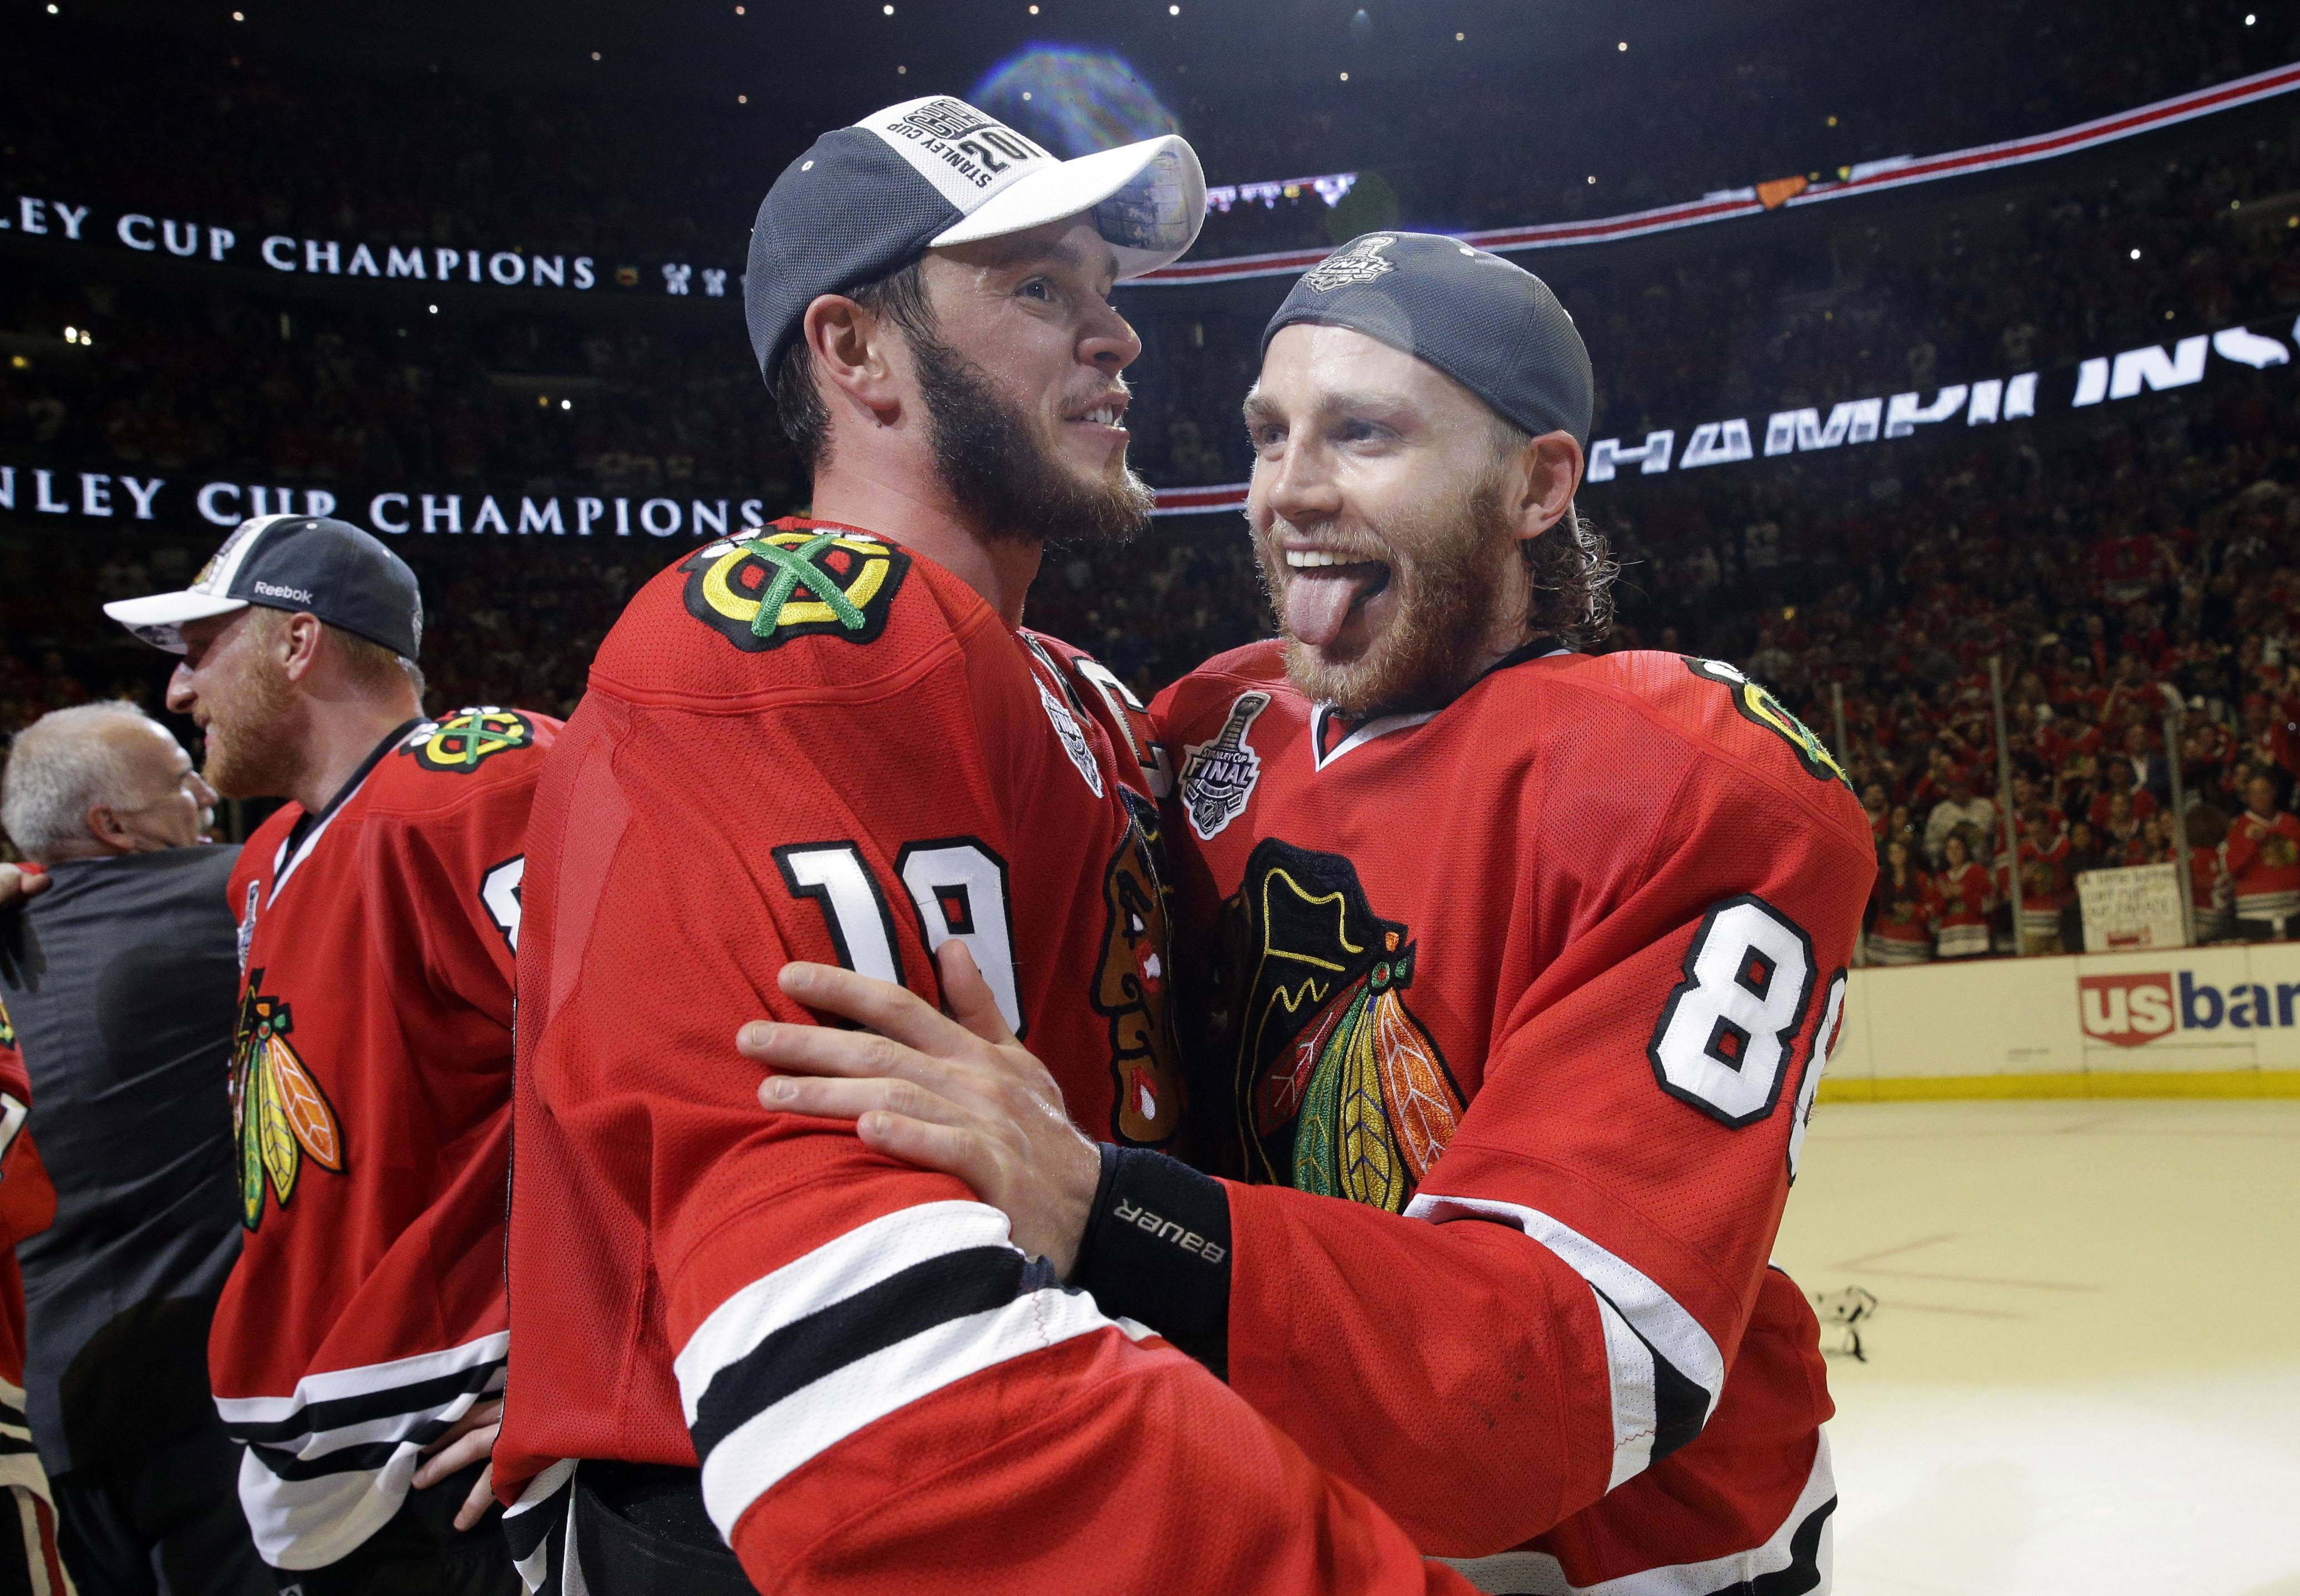 Blackhawks' Jonathan Toews and Patrick Kane celebrate after defeating the Tampa Bay Lightning in Game 6 of the NHL hockey Stanley Cup Final series on Monday, June 15, 2015, in Chicago. The Blackhawks defeated the Lightning 2-0 to win the series 4-2.The Blackhawks got back to work Friday as training camp opened at the United Center. The big question is, do they have what it takes to compete for another Stanley Cup?